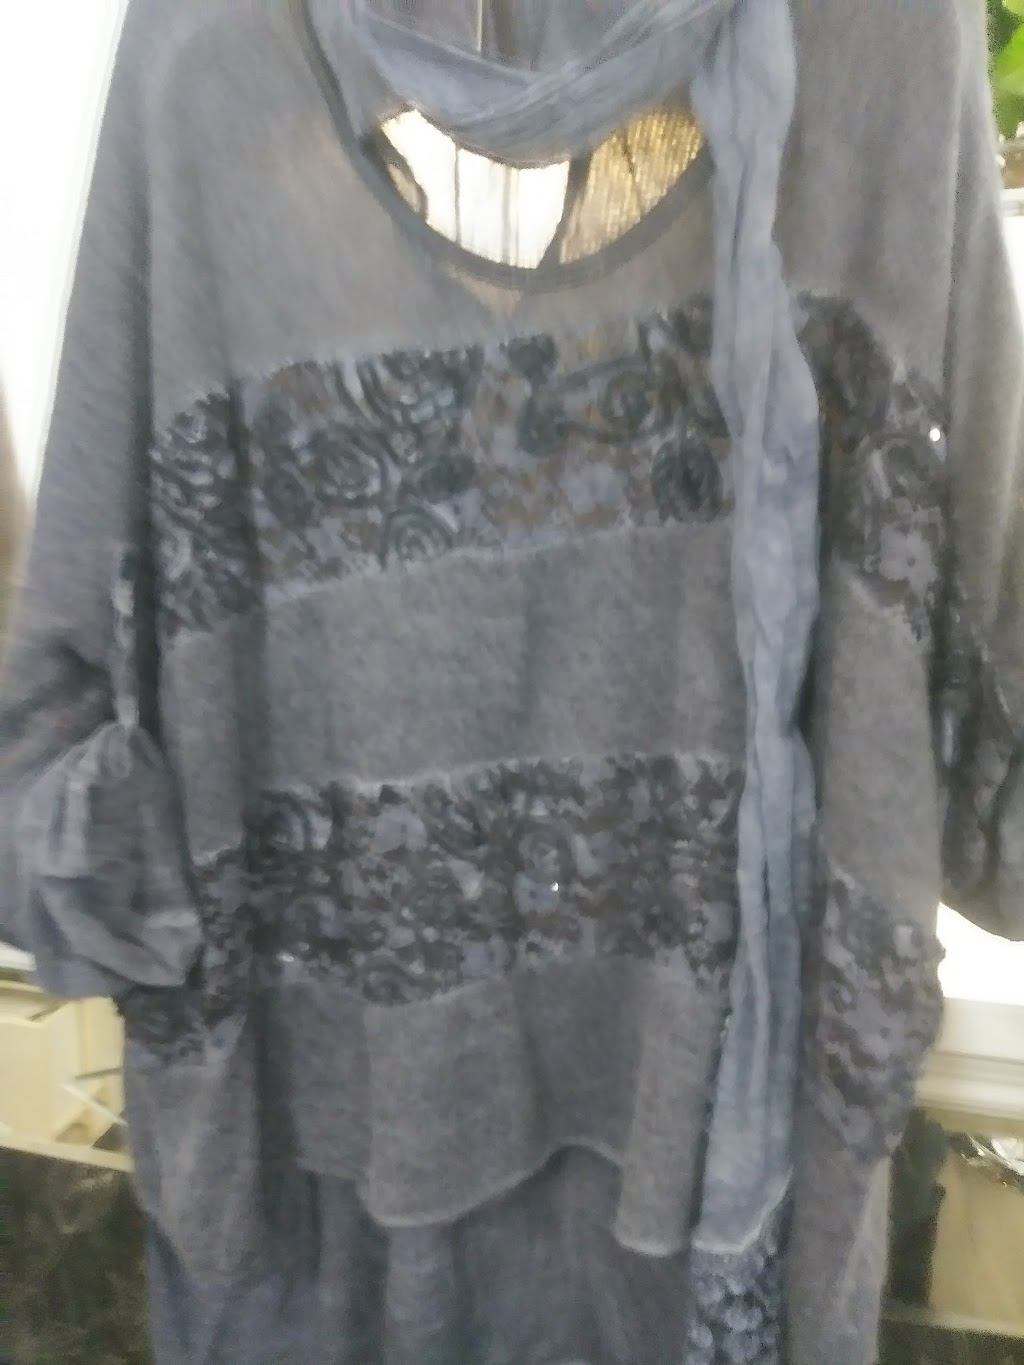 Maggies in Belmont village   clothing store   675 Belmont Ave W, Kitchener, ON N2M 1N8, Canada   5195765946 OR +1 519-576-5946